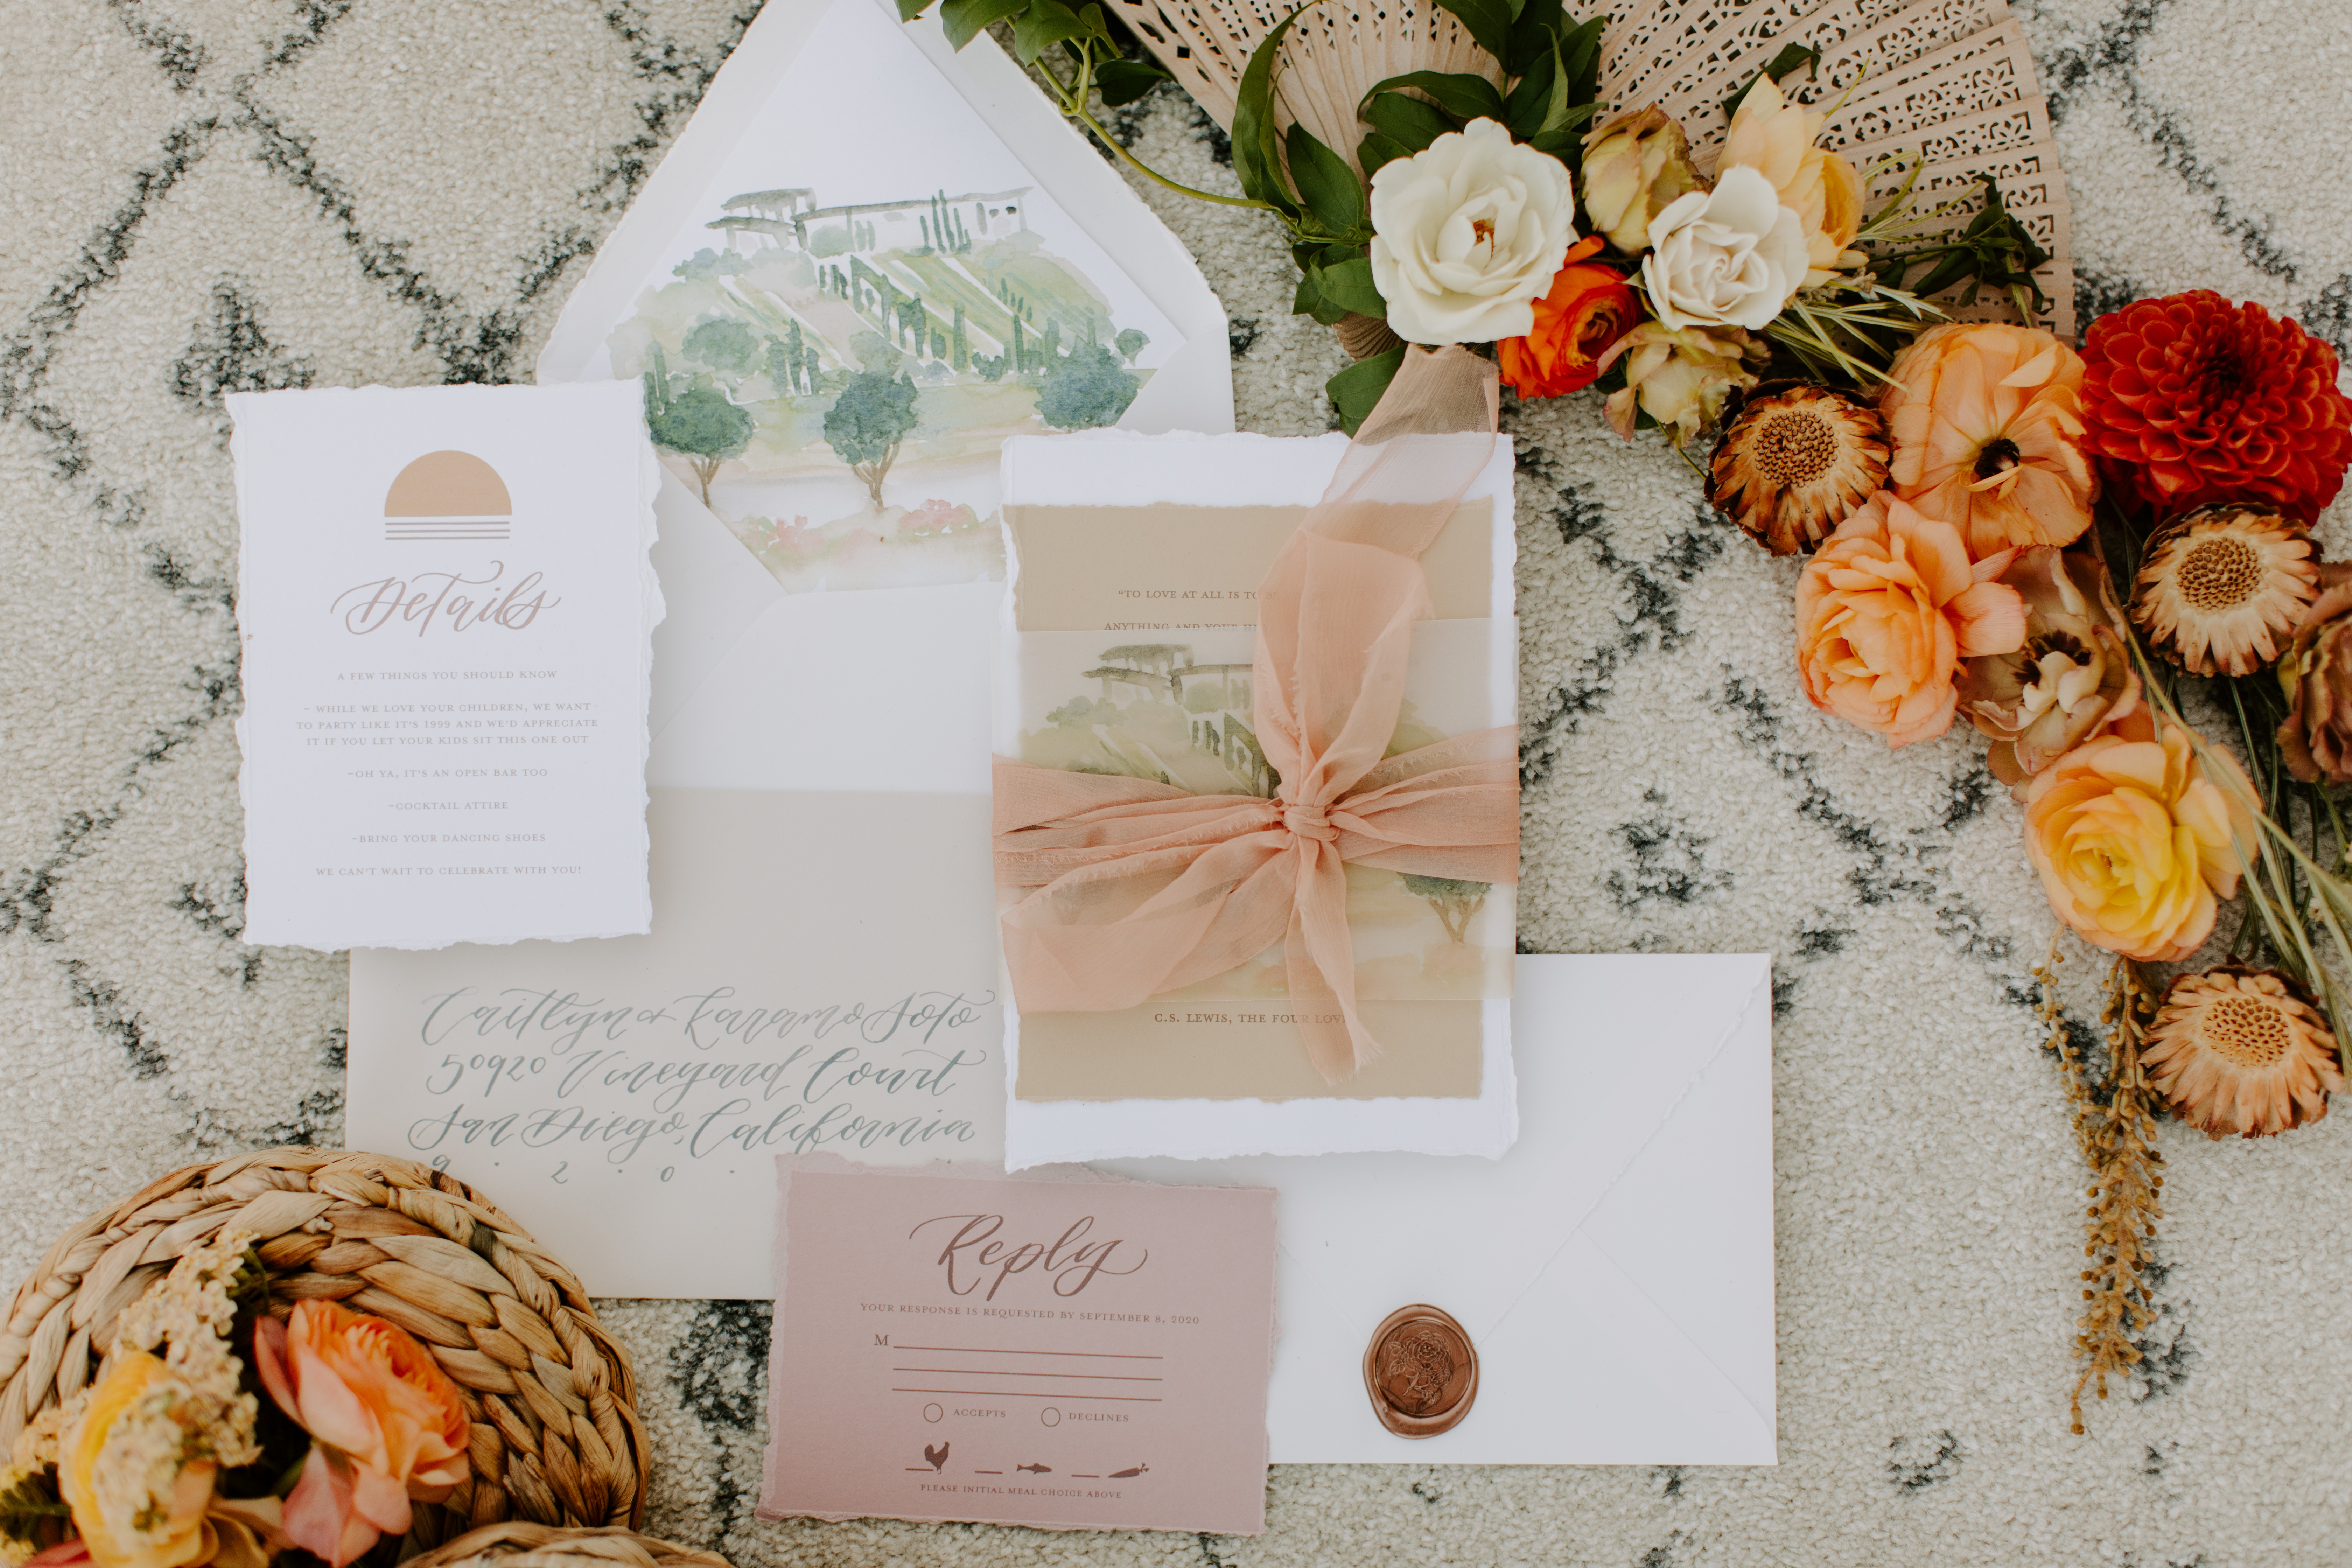 Stationery and roses